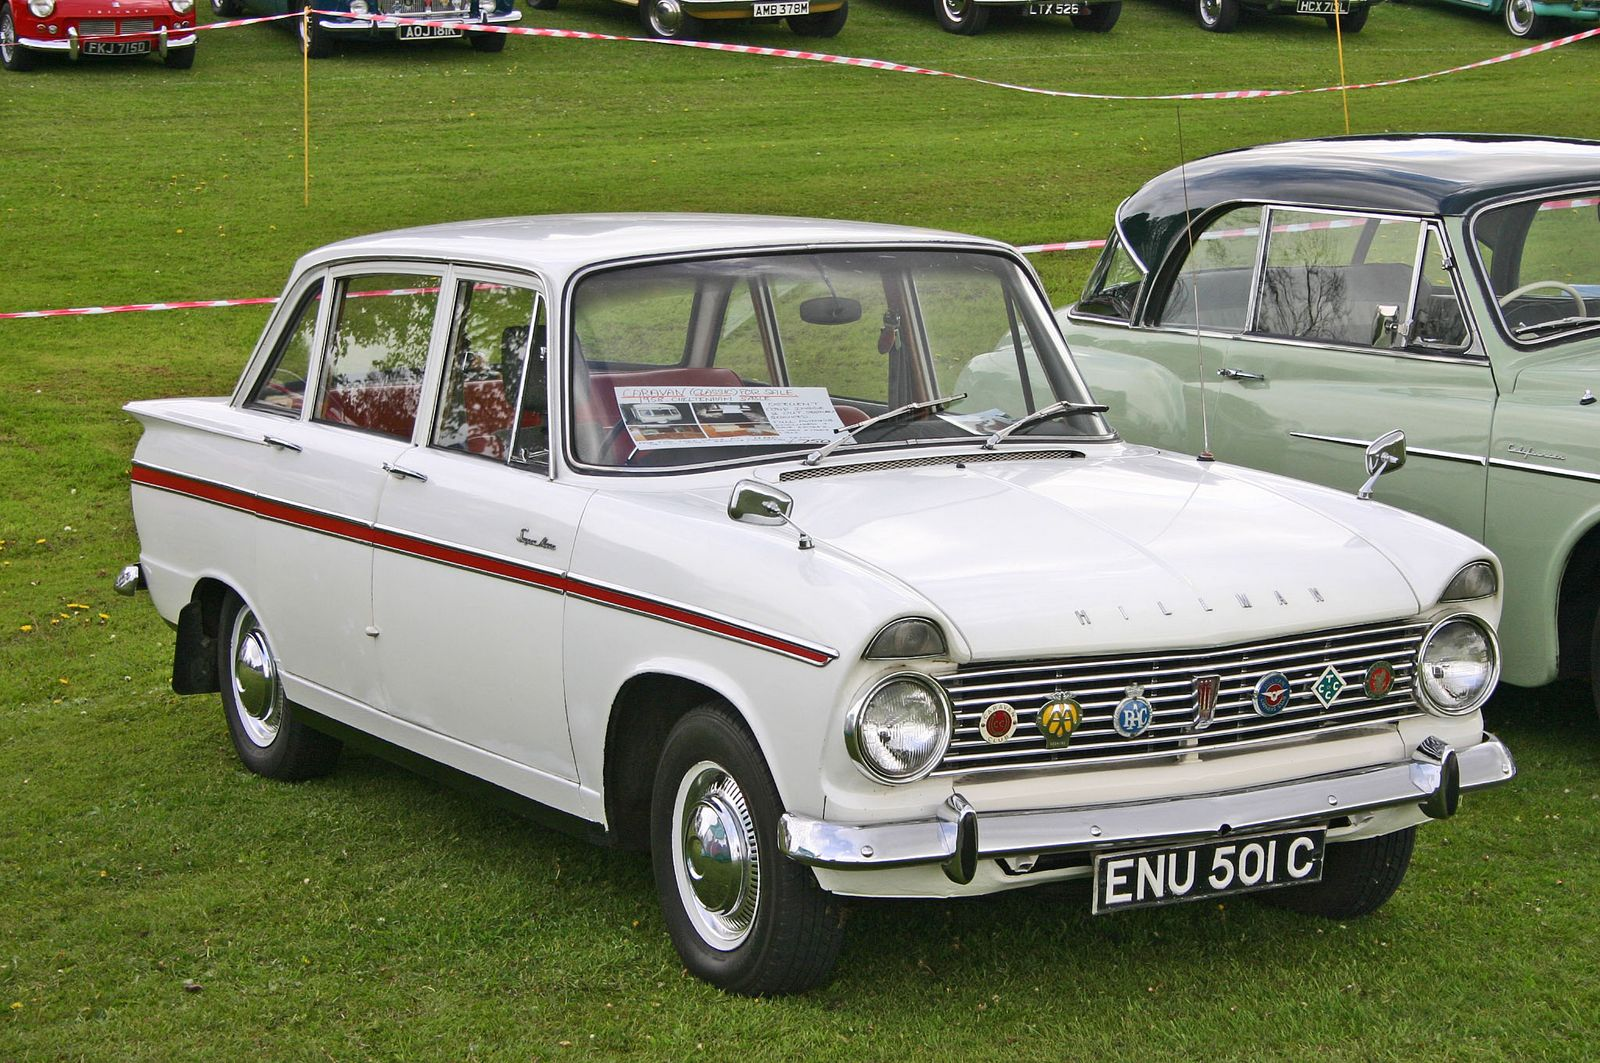 1964 Hillman Super Minx - CarsAddiction.com